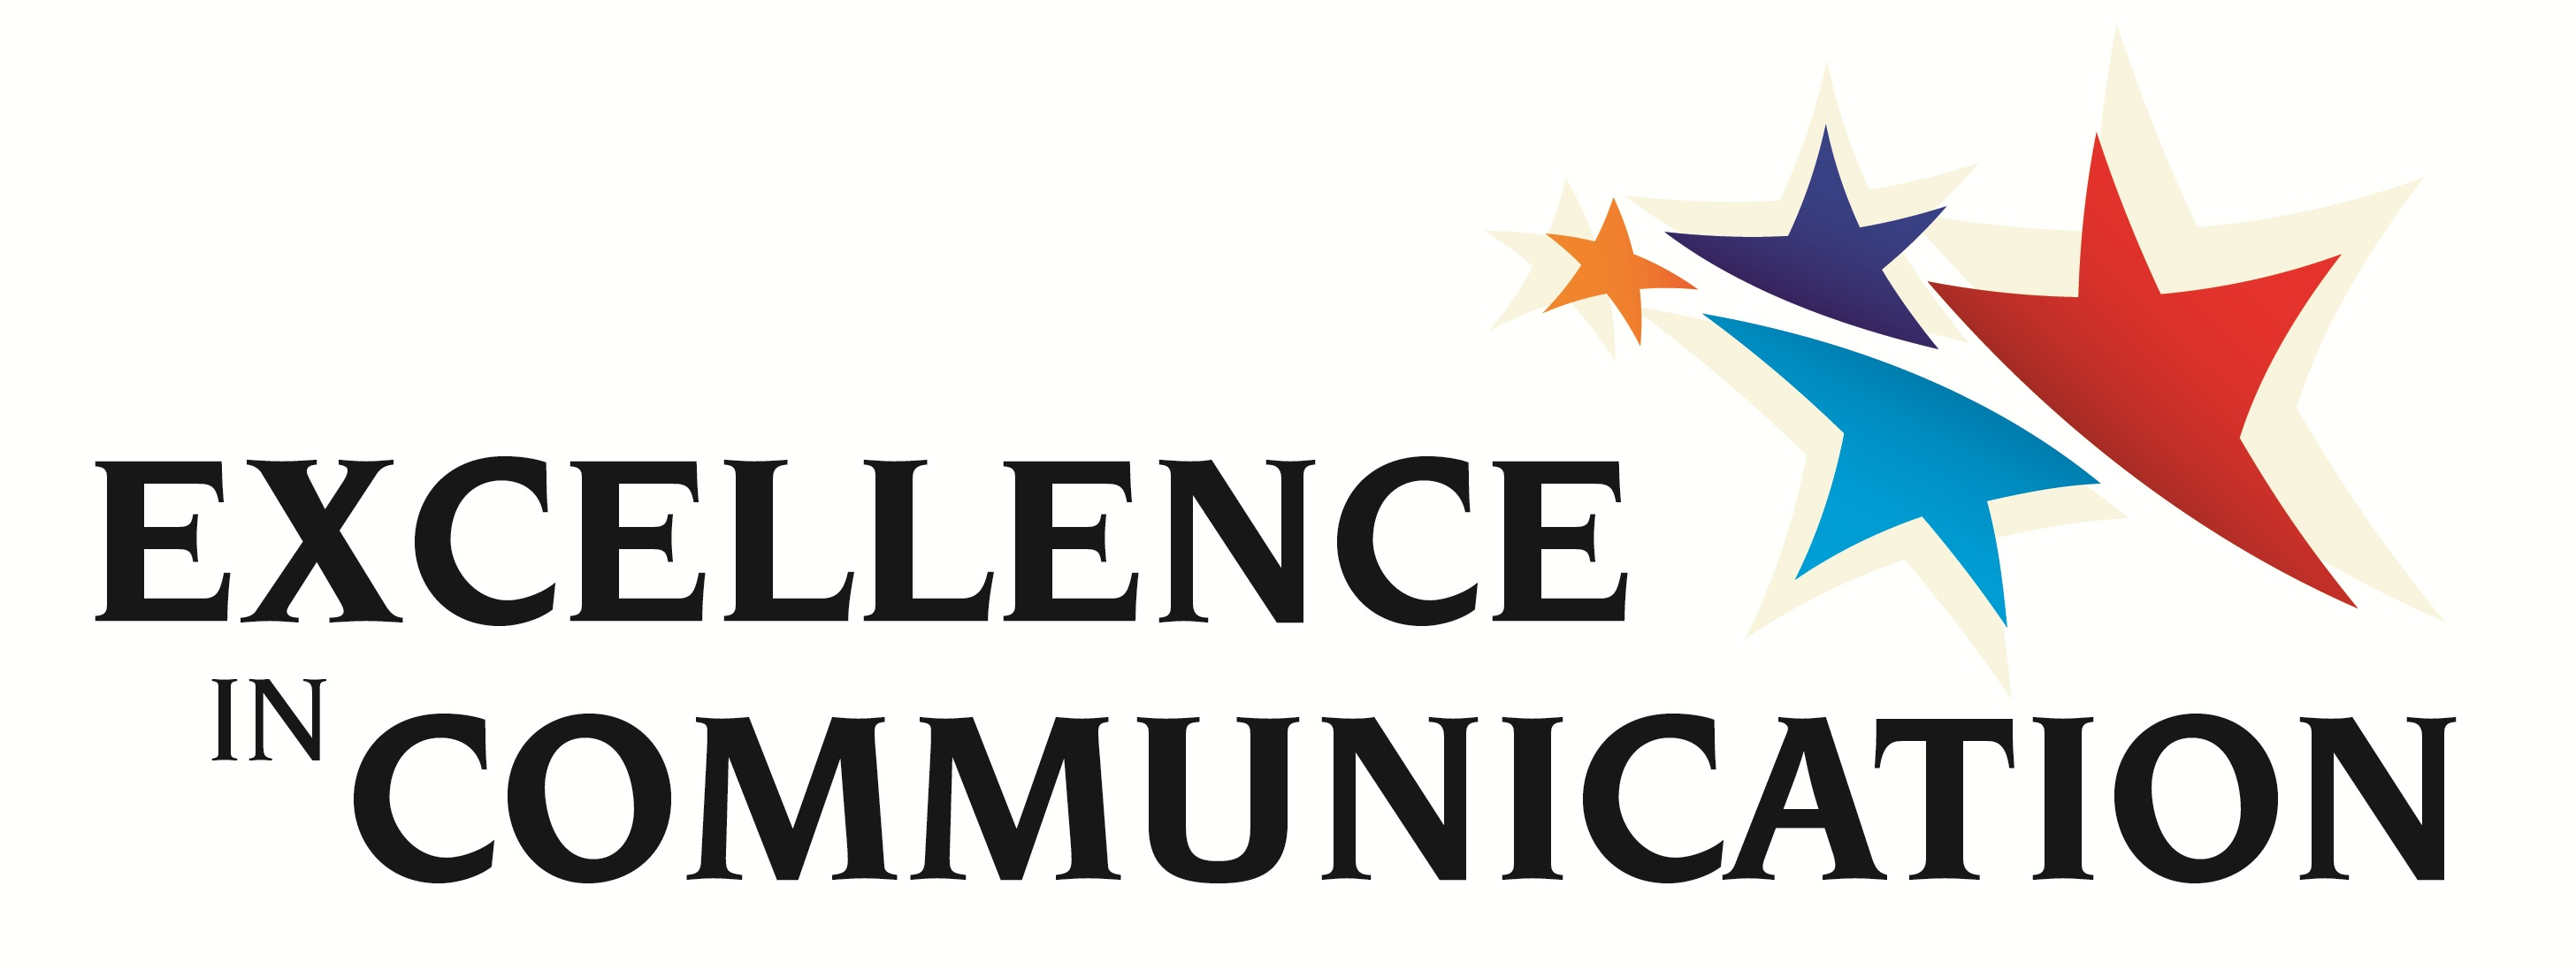 Thomas PR awarded Long Island Business News Excellence in Communication 2017 for Best PR Campaign